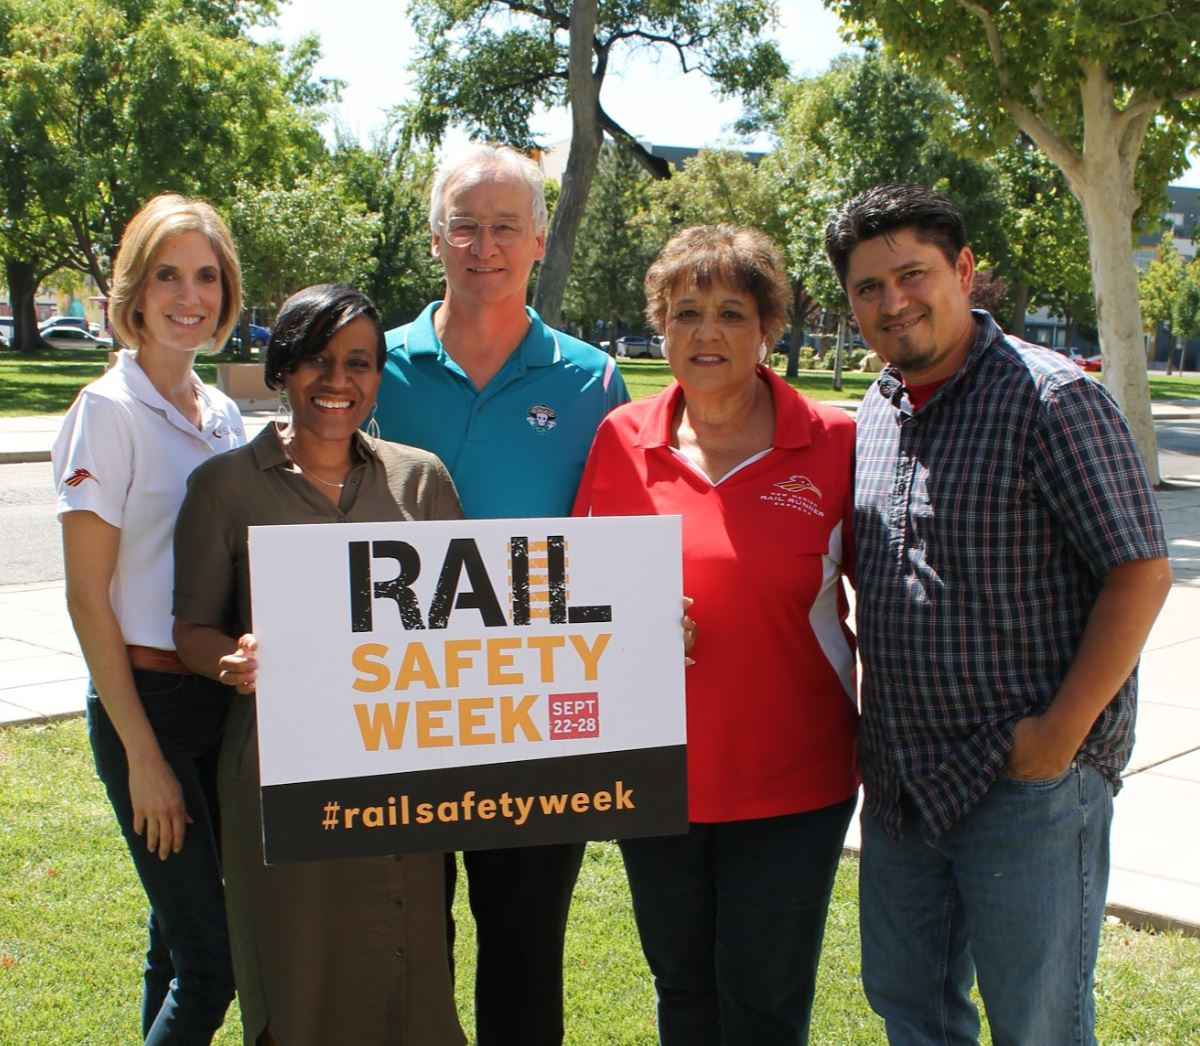 Marketing staff holding rail safety sign